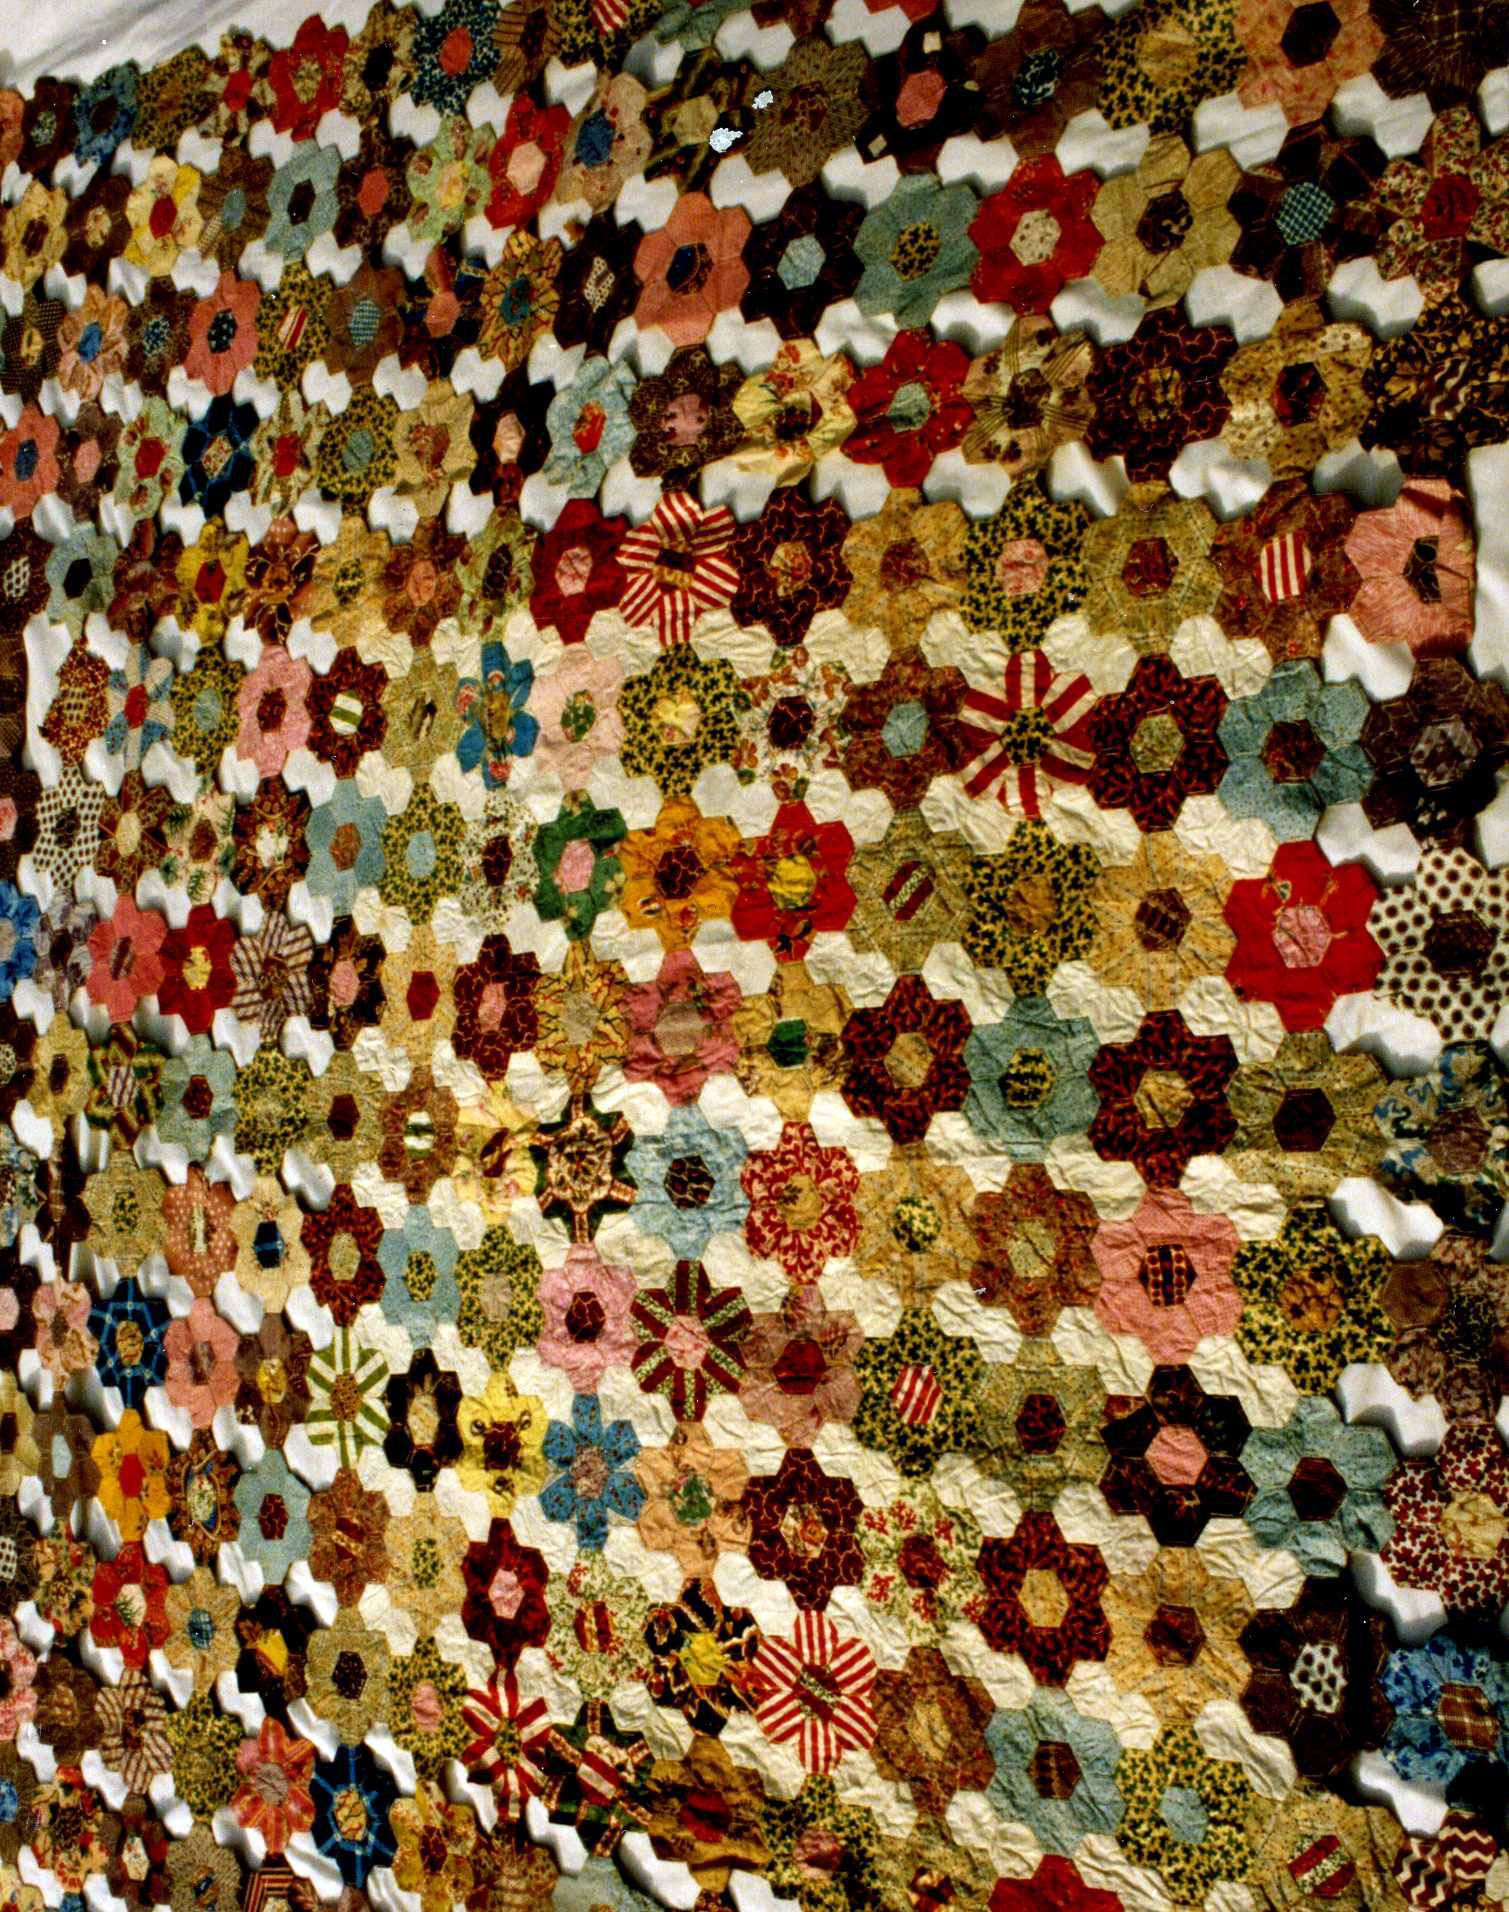 Antique quilt dating